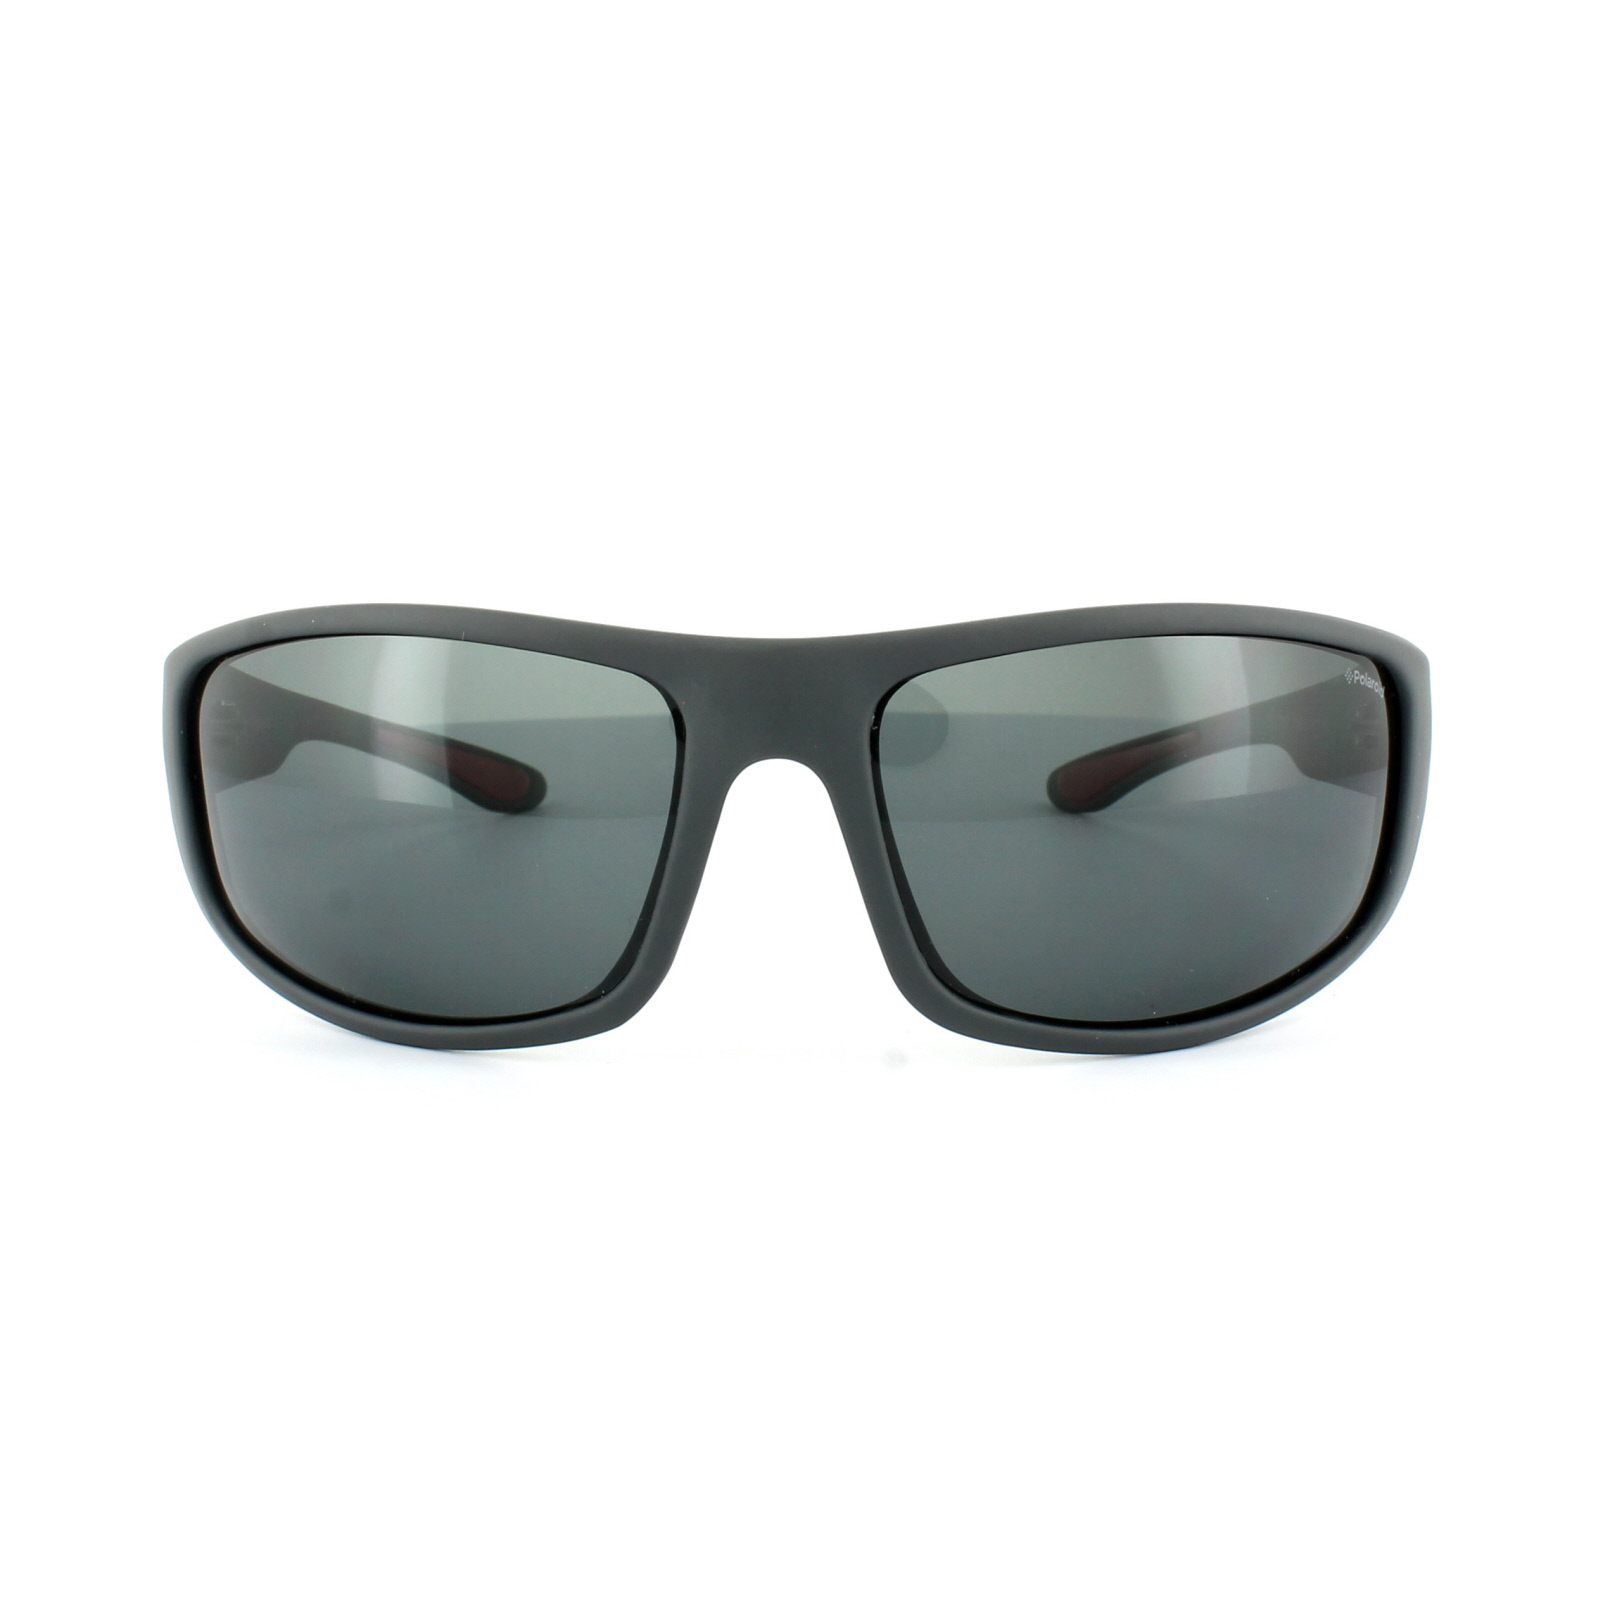 69147ae344dd Cheap Polaroid 3016 S Sunglasses - Discounted Sunglasses